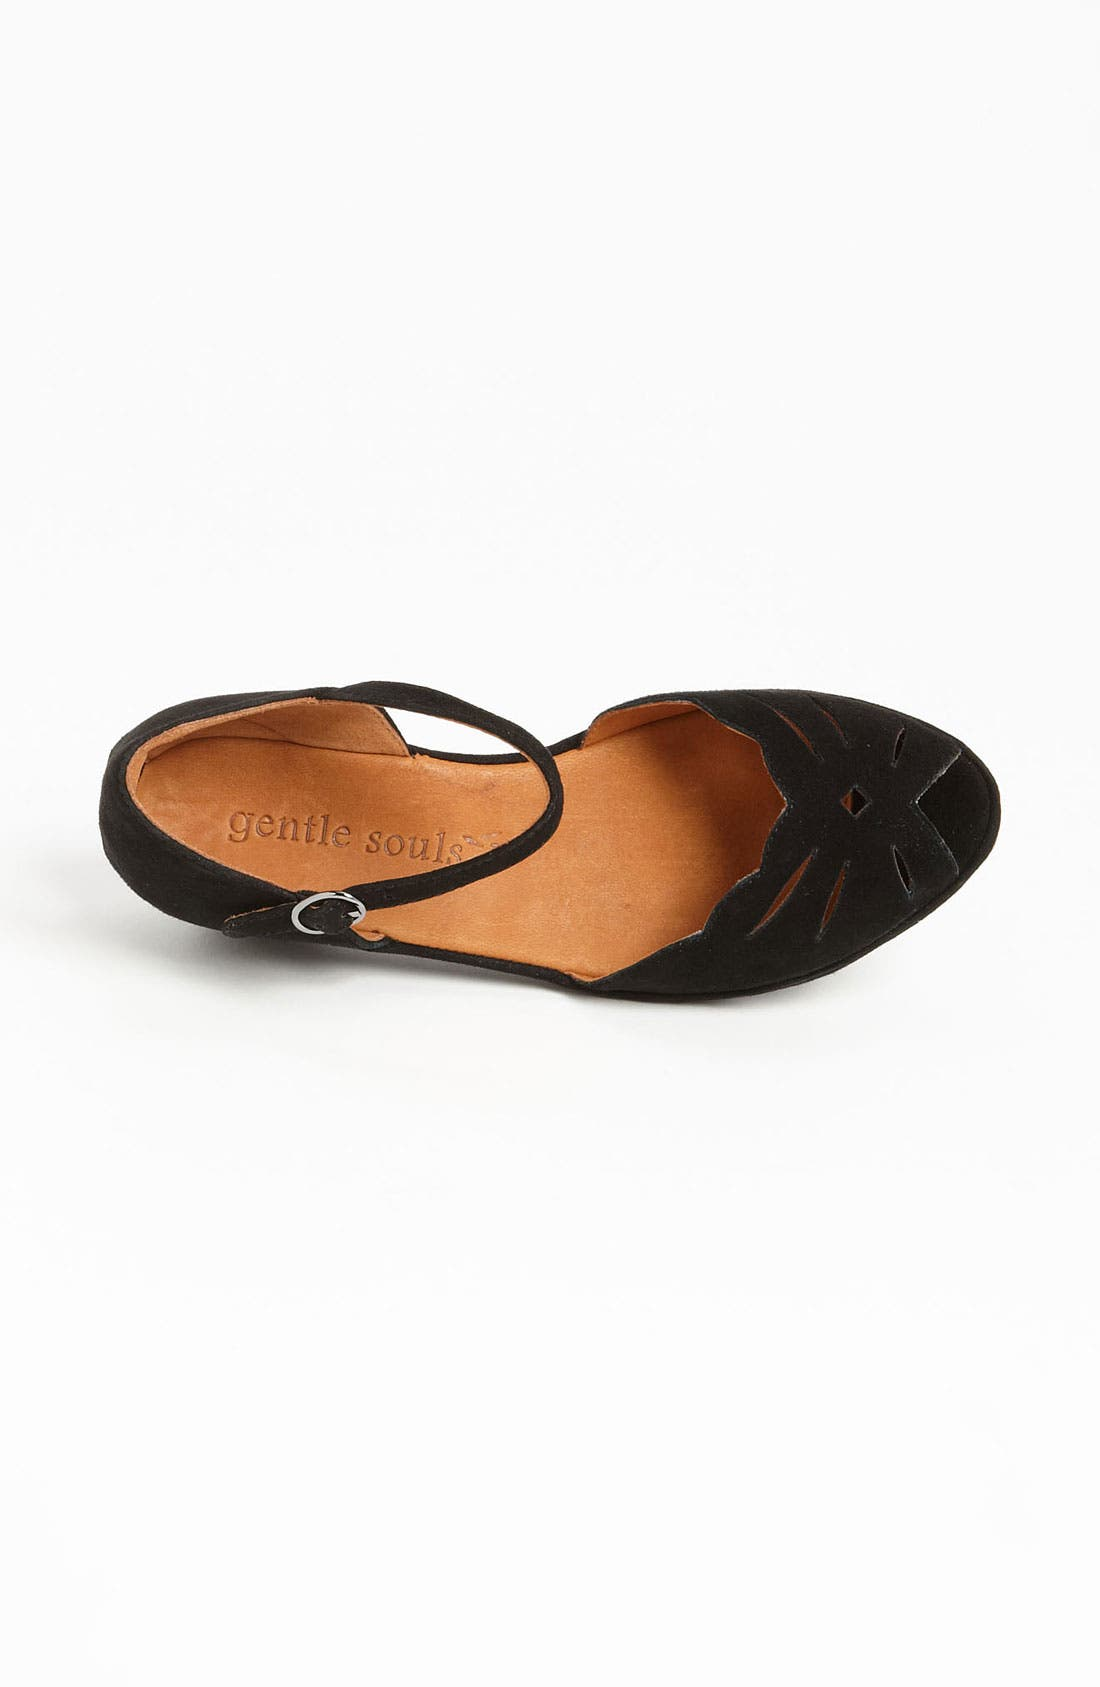 GENTLE SOULS BY KENNETH COLE, 'Lily Moon' Sandal, Alternate thumbnail 3, color, BLACK